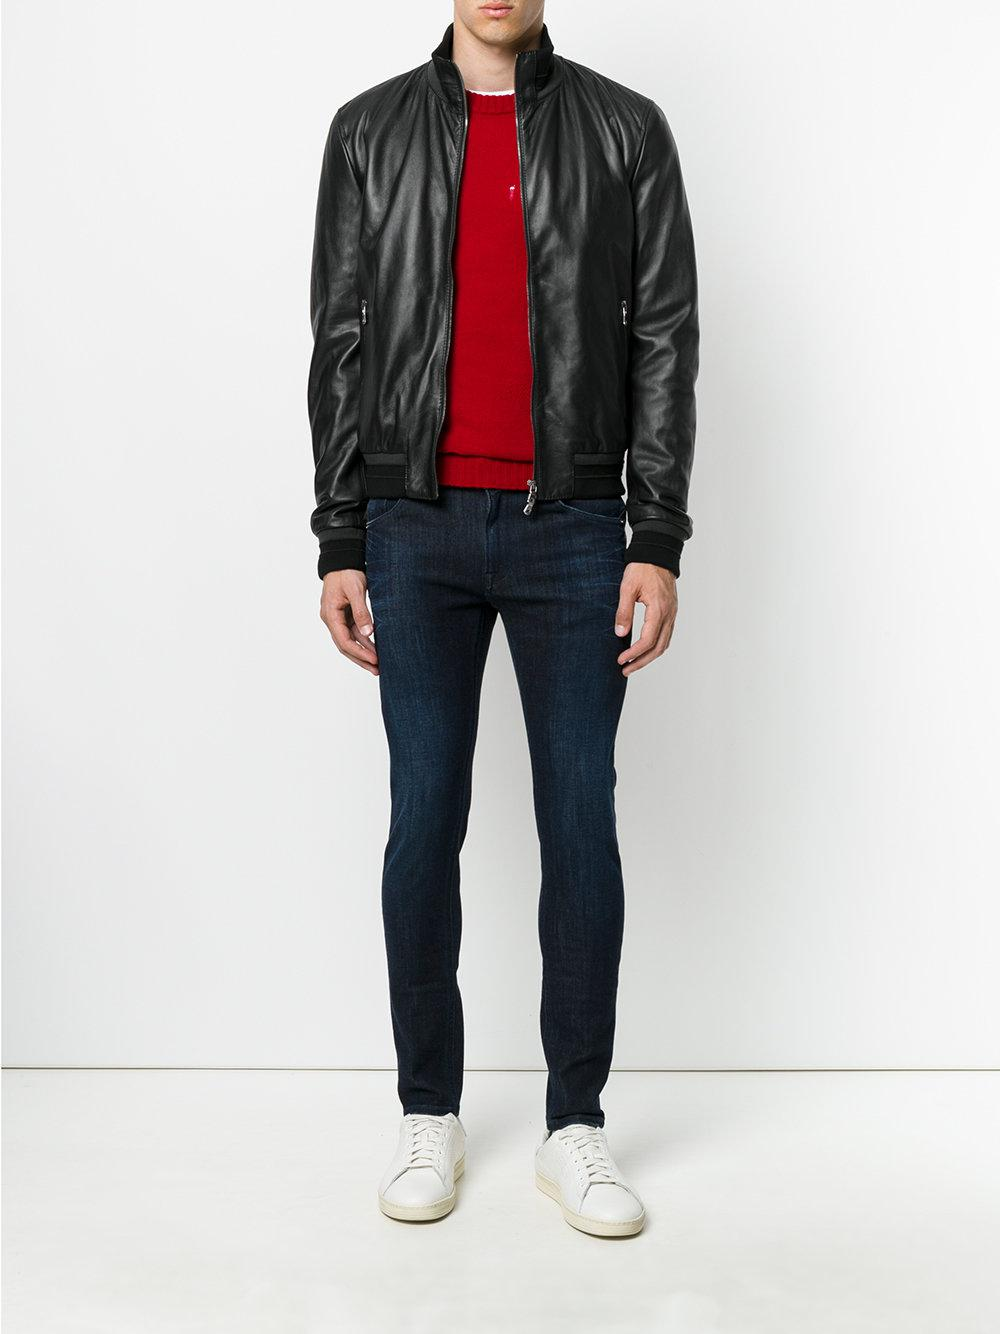 Dolce & Gabbana Leather Classic Biker Jacket in Black for Men